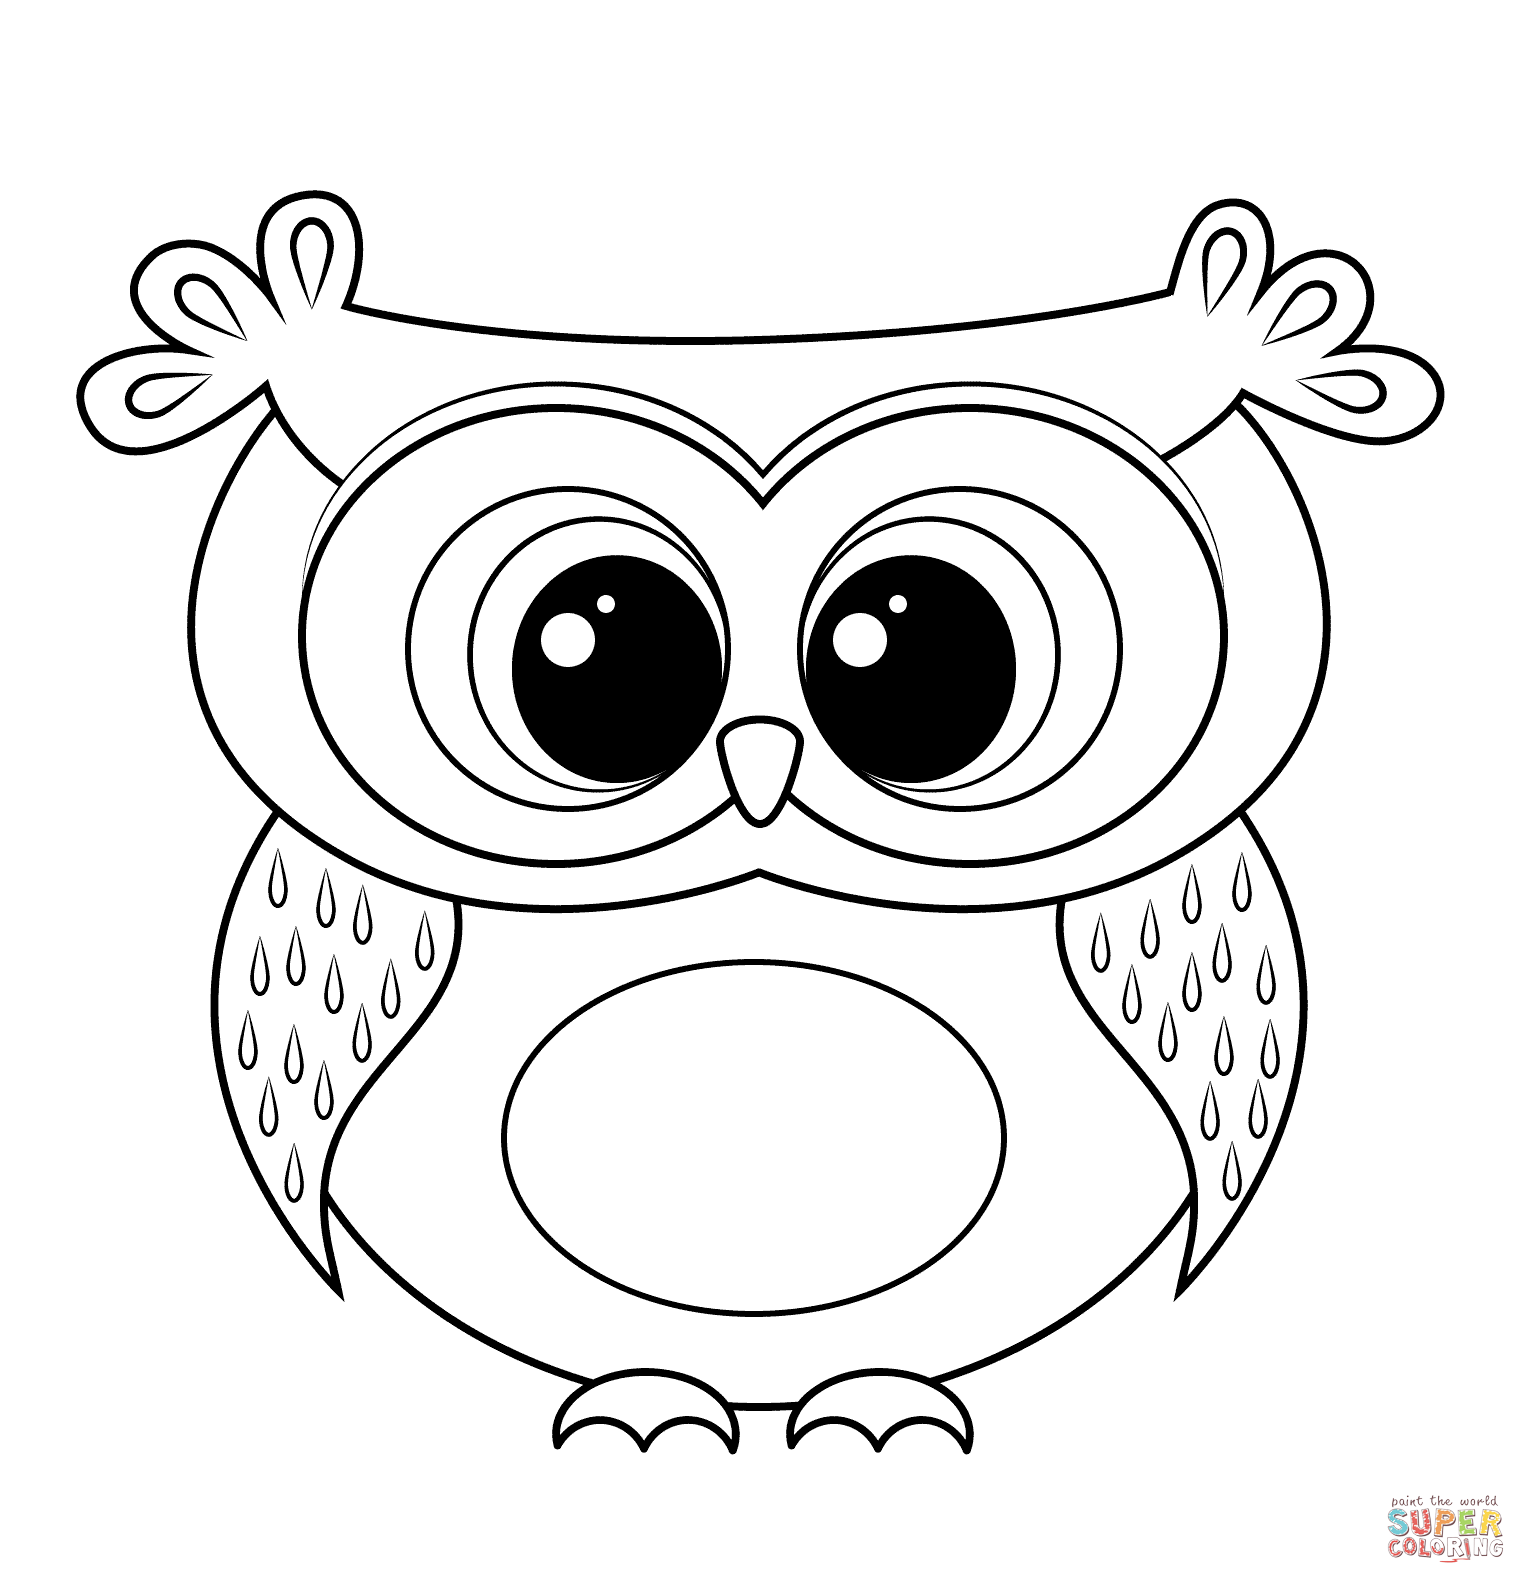 1526x1584 Cartoon Owl Coloring Page Free Printable Coloring Pages